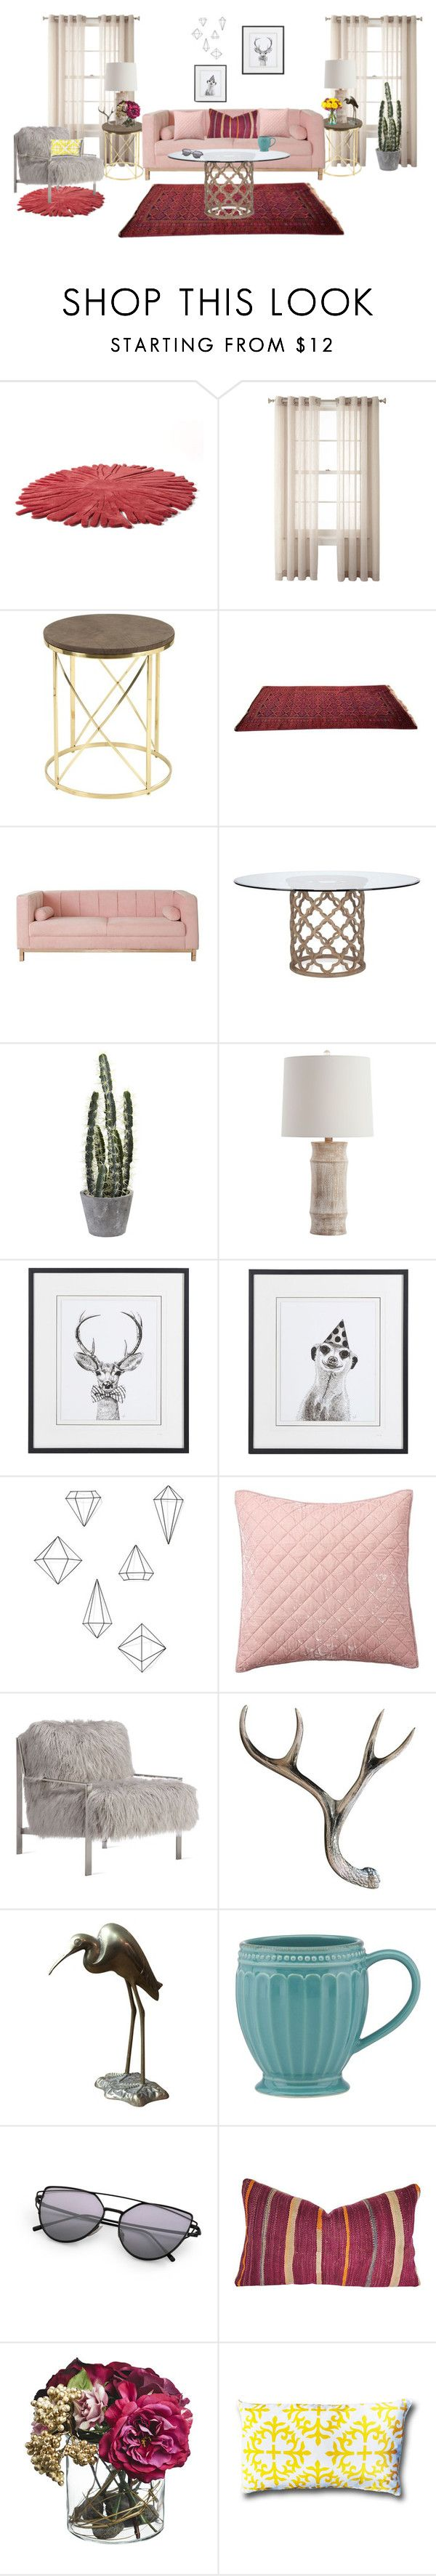 """""""Maroon"""" by jet1397 ❤ liked on Polyvore featuring interior, interiors, interior design, home, home decor, interior decorating, Nodus, Royal Velvet, Arteriors and Umbra"""